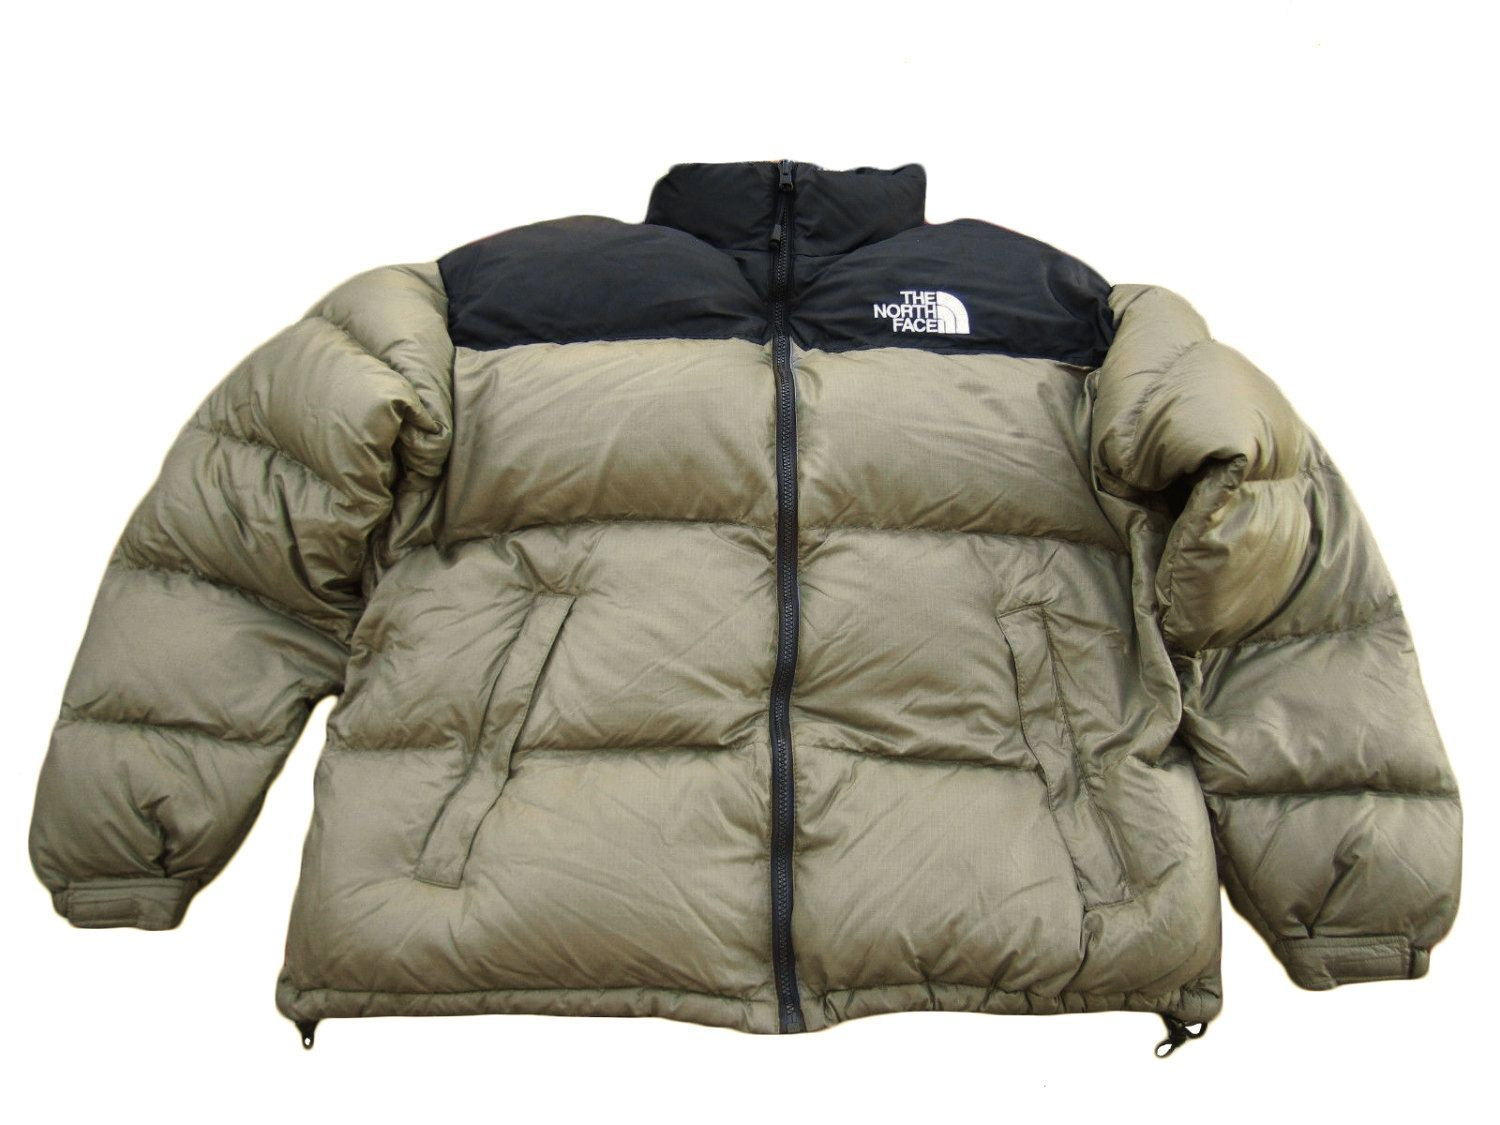 b212a9bae The North Face Men's Down Nuptse 700 Puffa Puffer Jacket Beige/Black ...